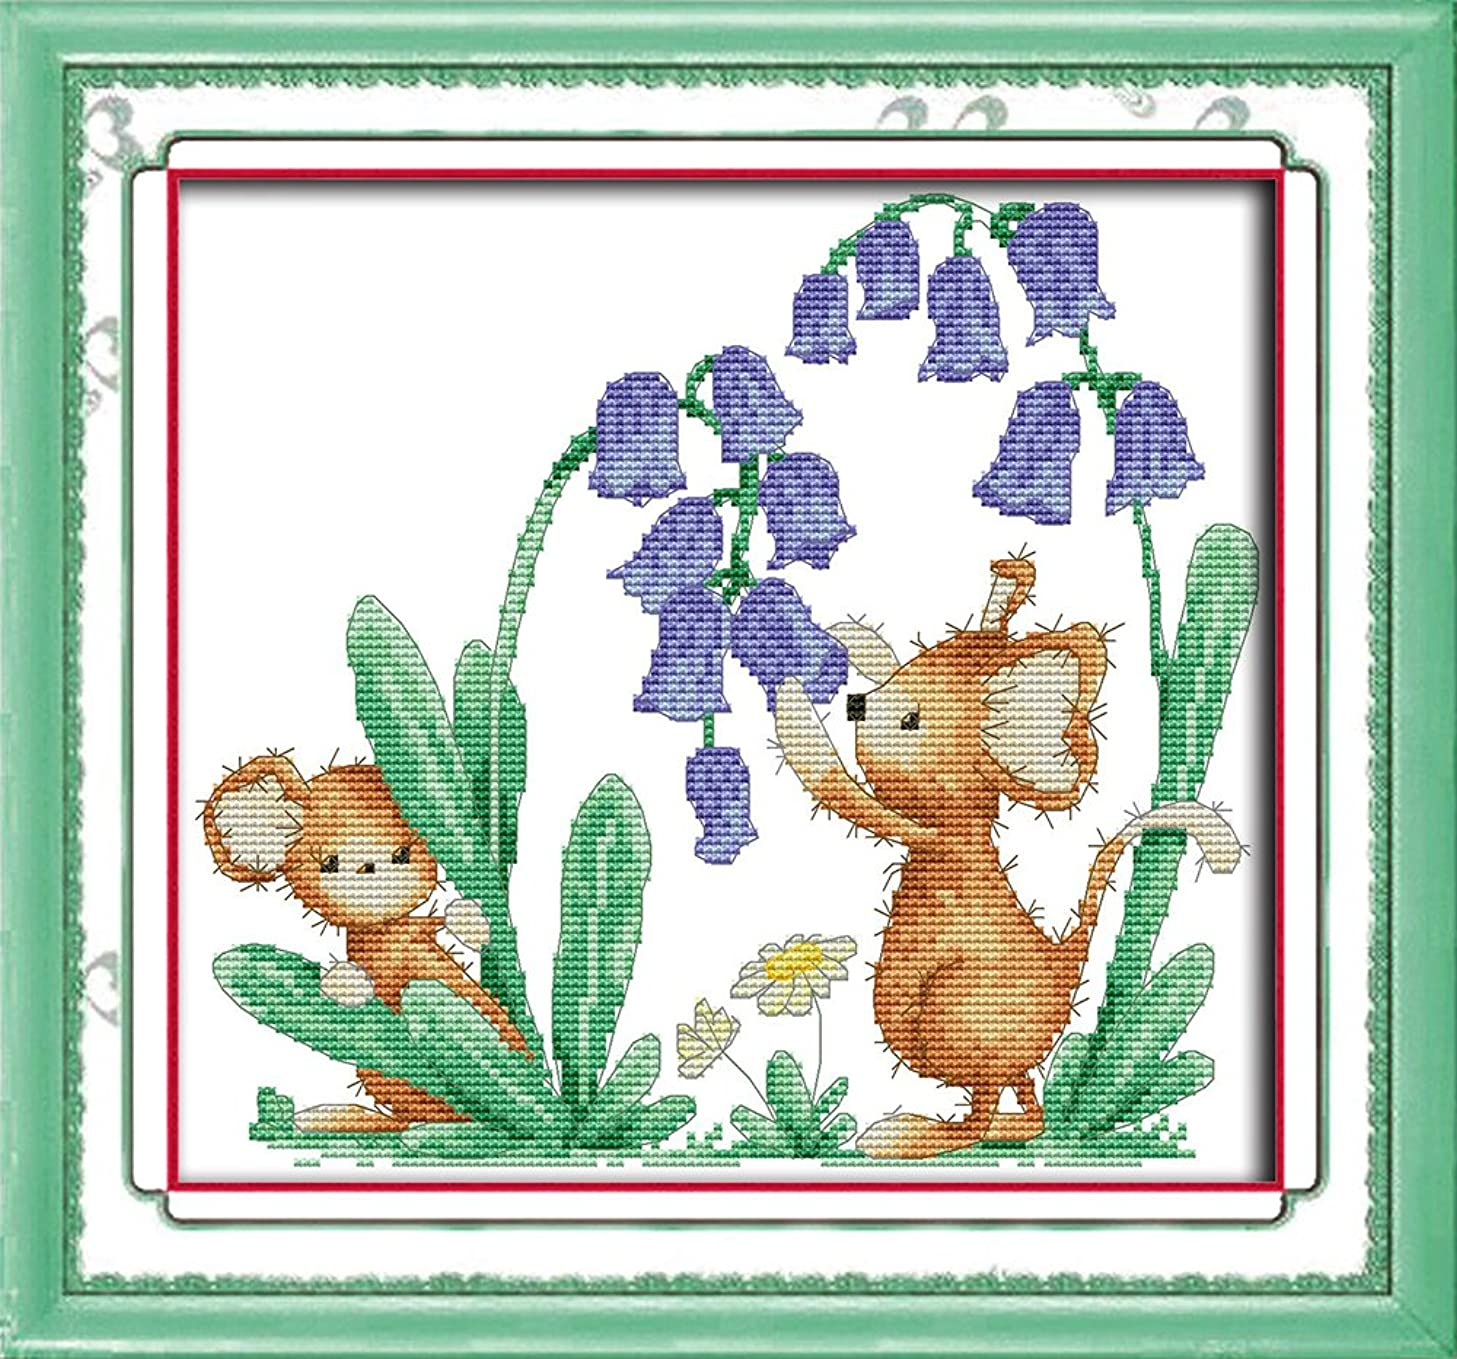 Full Range of Embroidery Starter Kits Stamped Cross Stitch Kits Beginners for DIY Embroidery (Multiple Pattern Designs) - Bluebells and mice